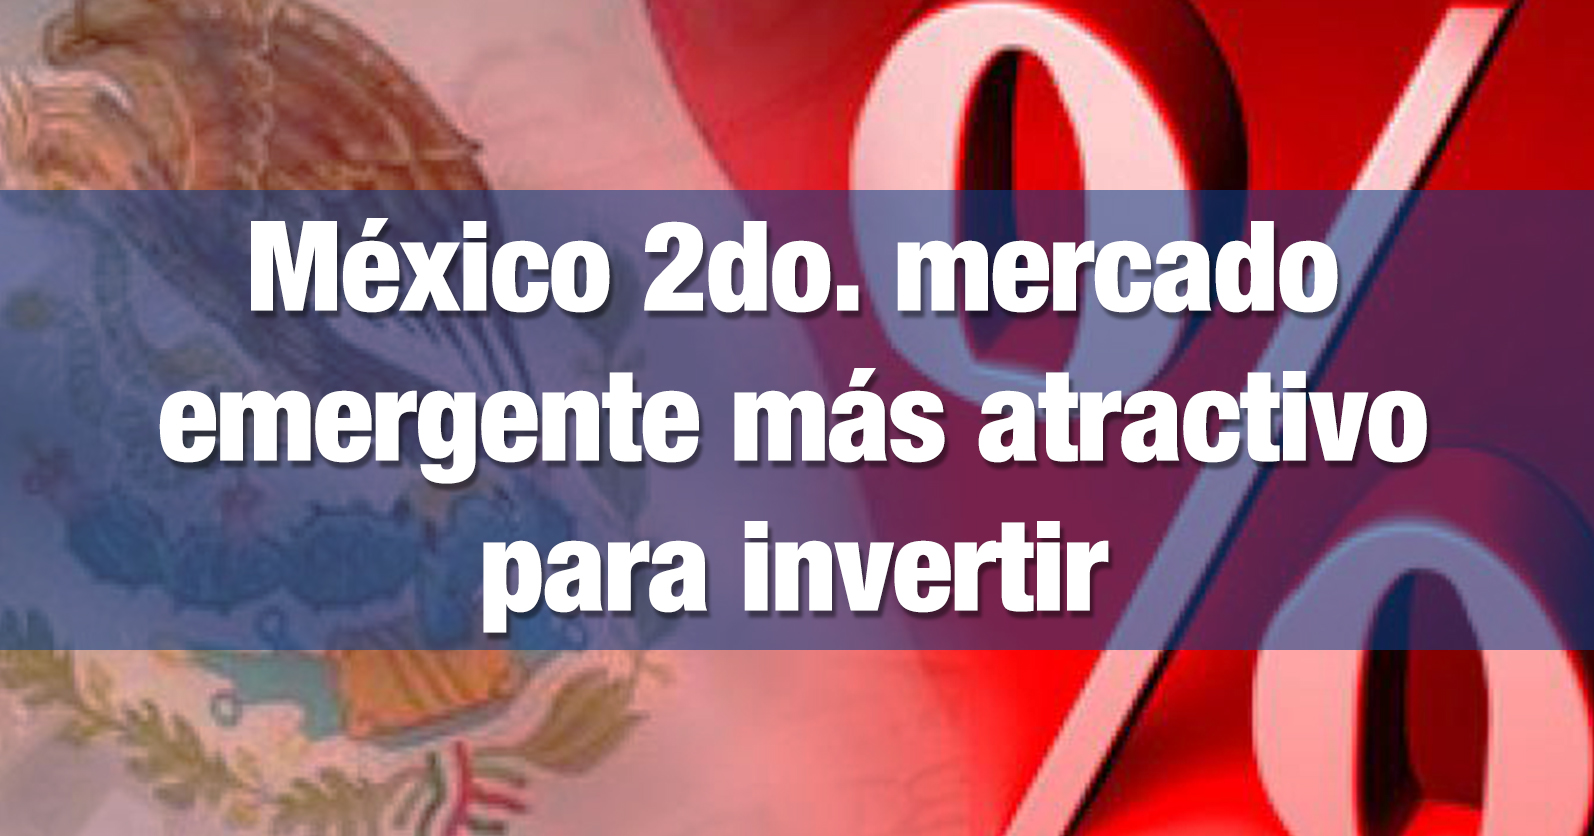 México 2do. mercado emergente más atractivo para invertir